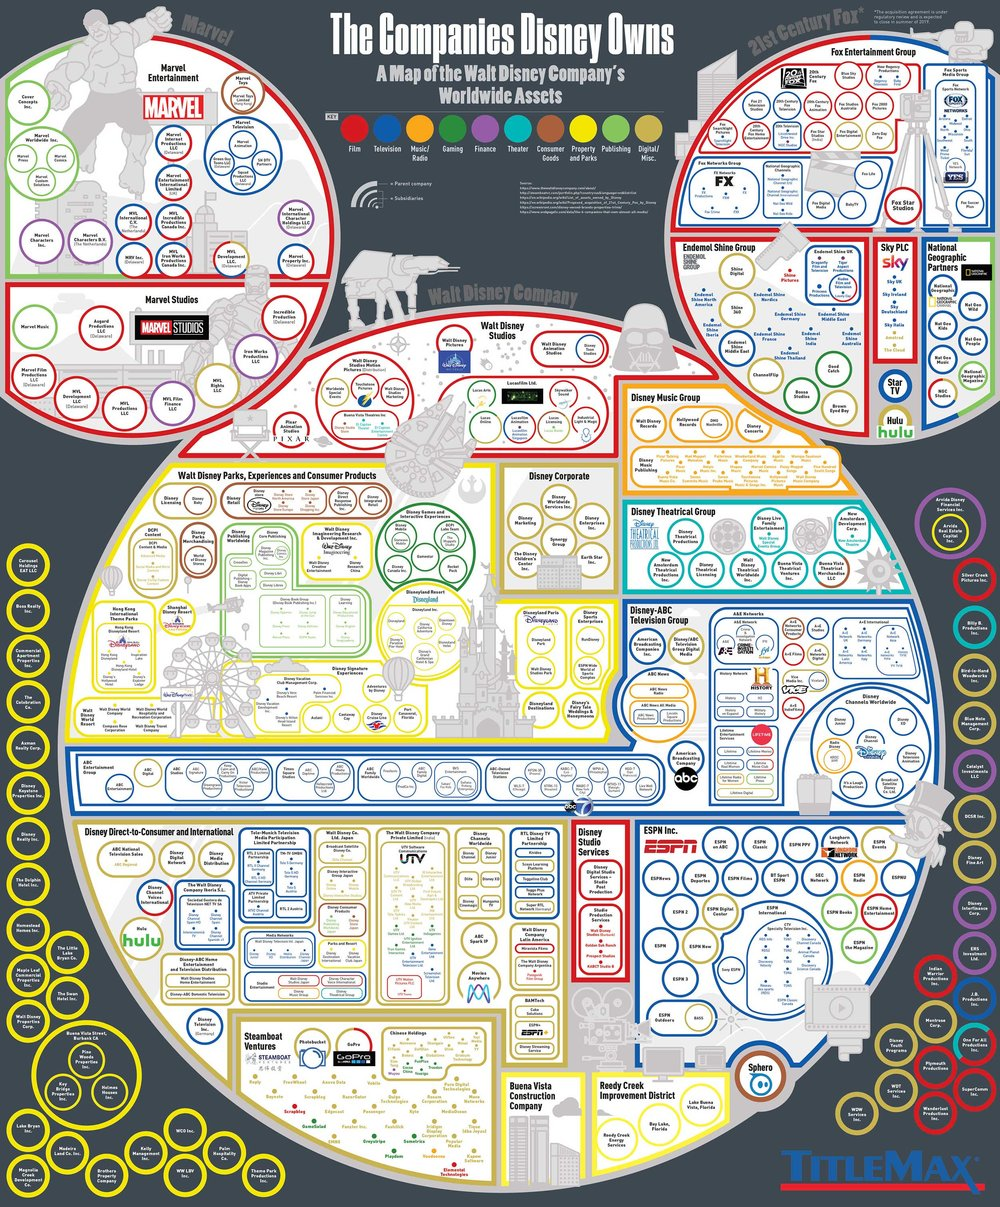 All the Companies Owned by Disney